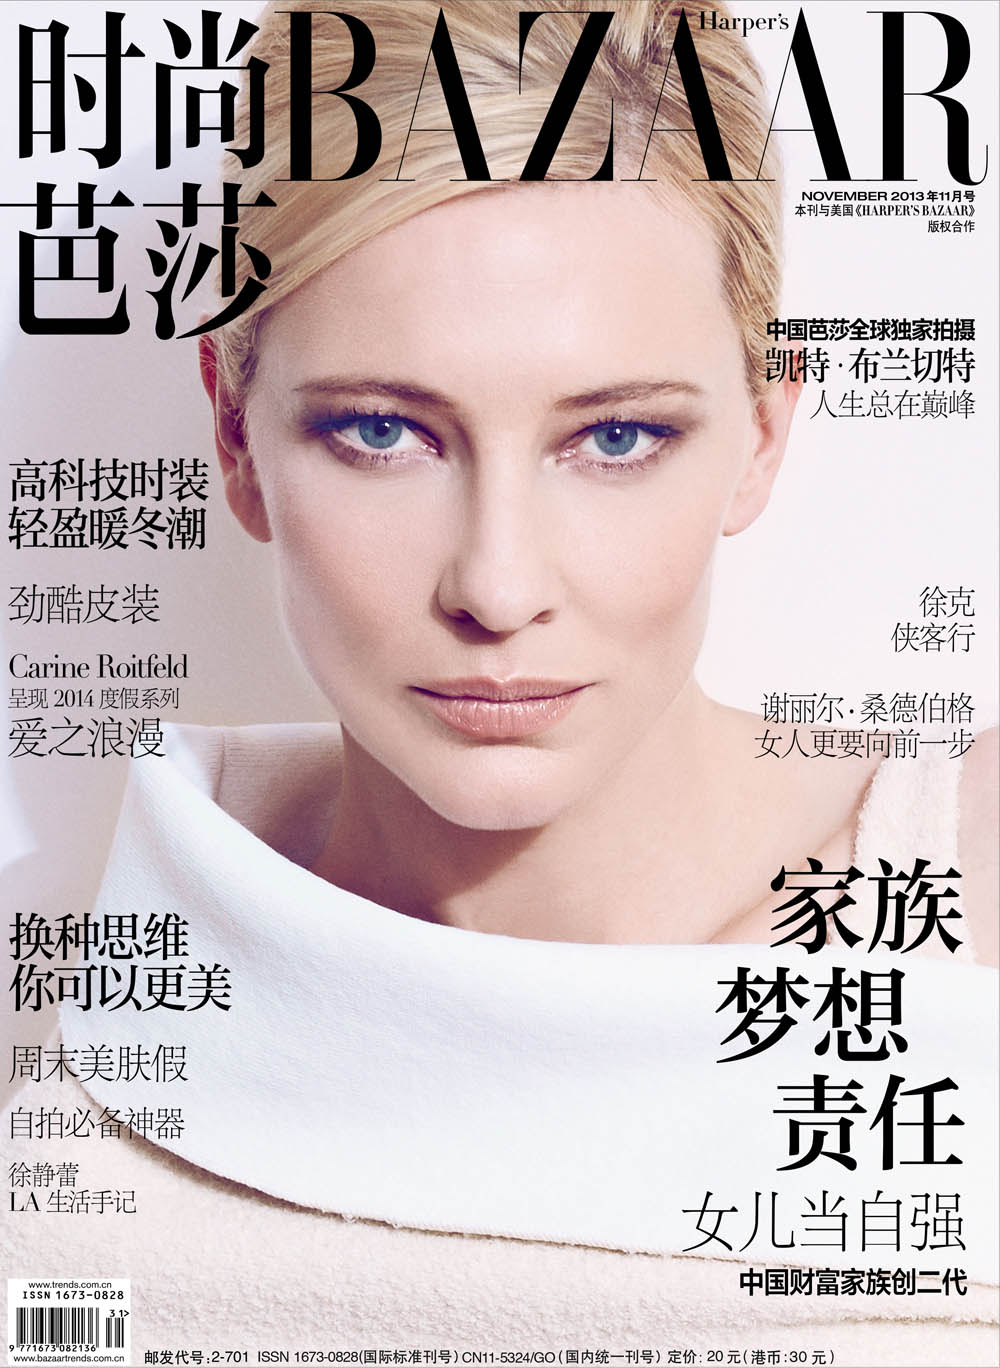 CATA BLANCHETT FOR HARPER'S BAZAAR CHINA